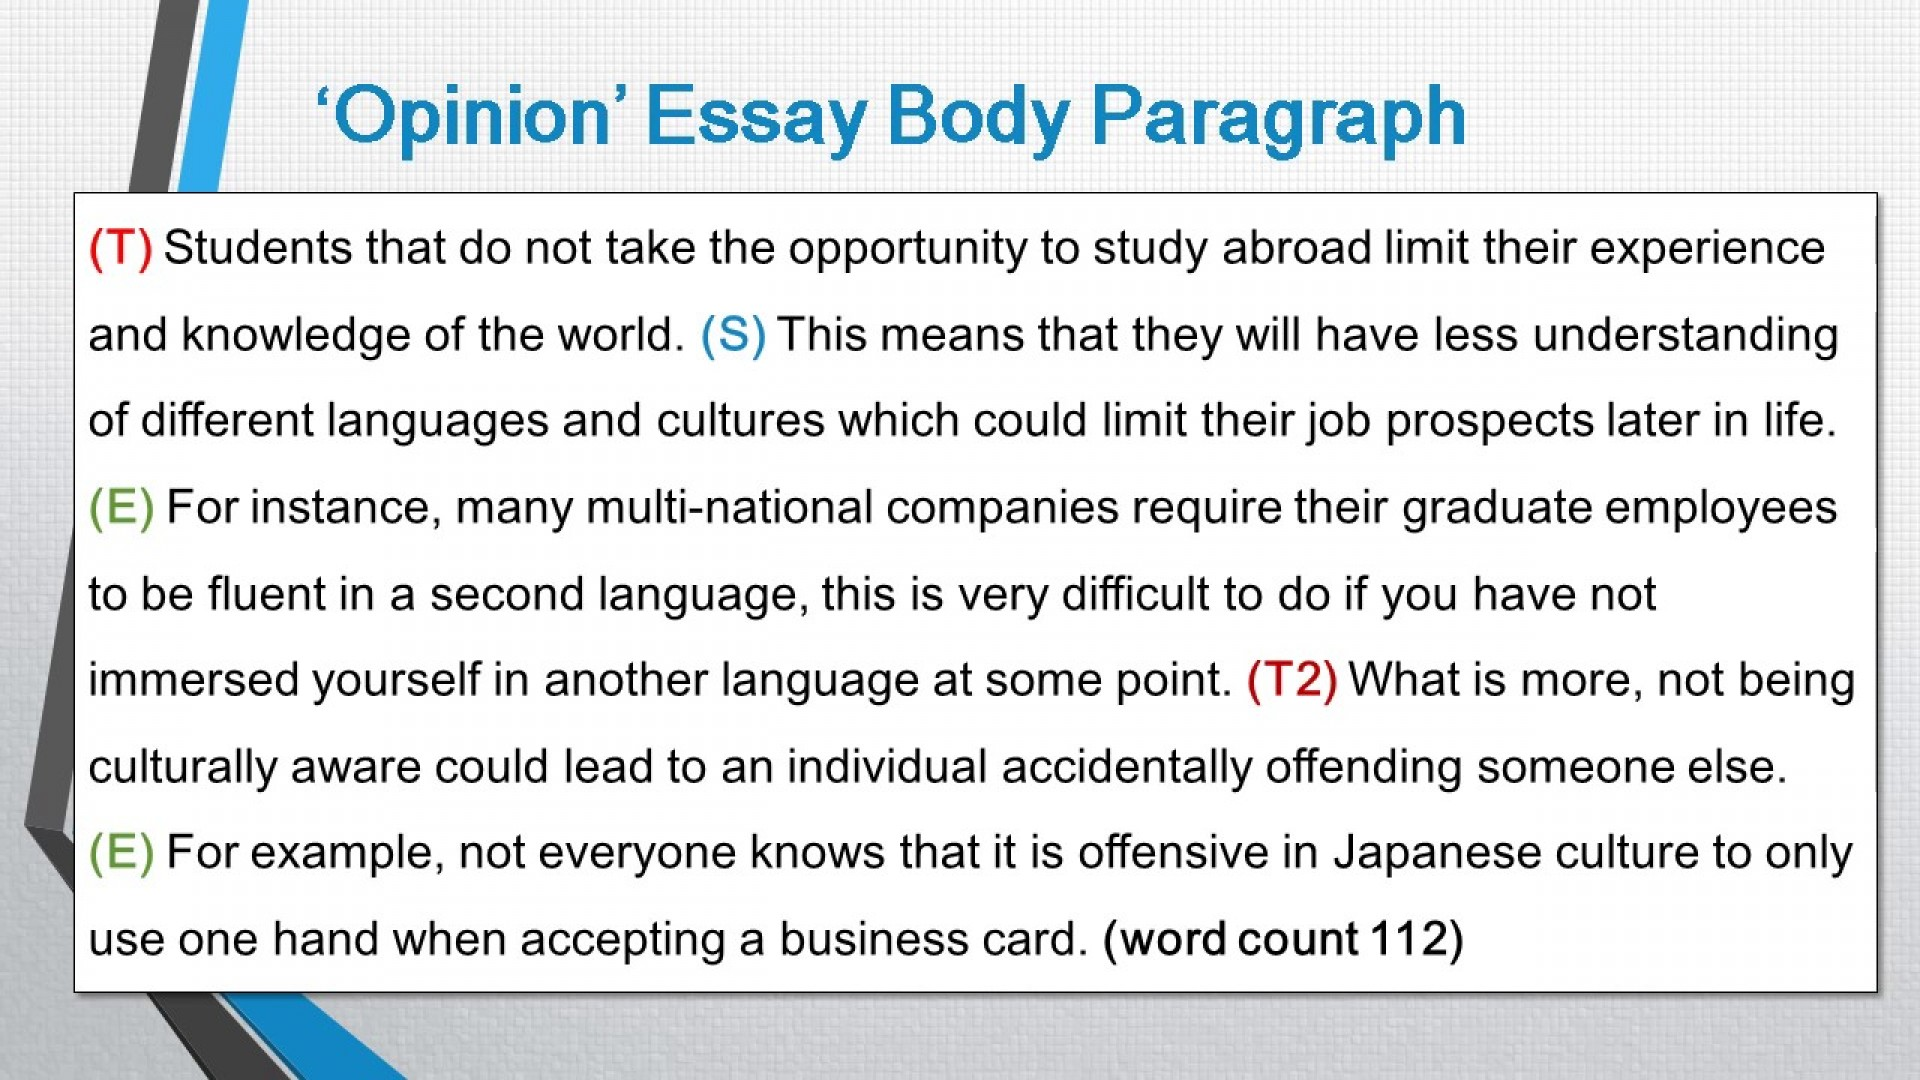 007 How To Start Off Body Paragraph In An Essay Maxresdefault Impressive A The First Words 1920